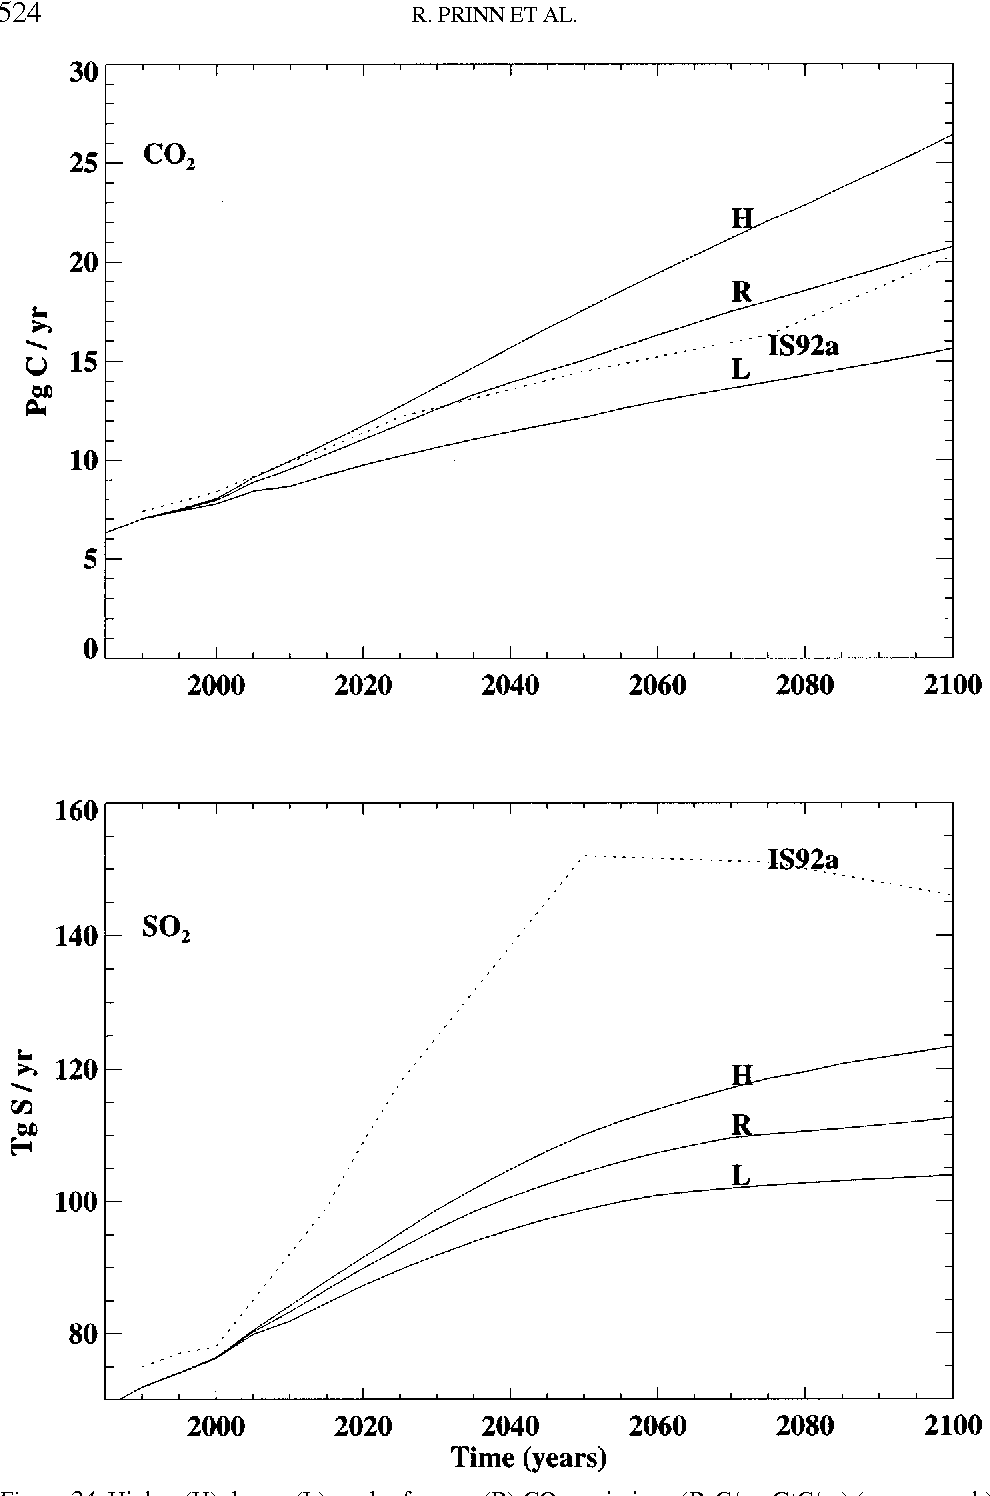 Figure 24. Higher (H), lower (L), and reference (R) CO2 emissions (PgC/yr, GtC/yr) (upper graph) and SO2 emissions (TgS/yr) (lower graph) from EPPA runs and IS92a IPCC (1992) emission scenarios. See Figure 23 for run nomenclature.